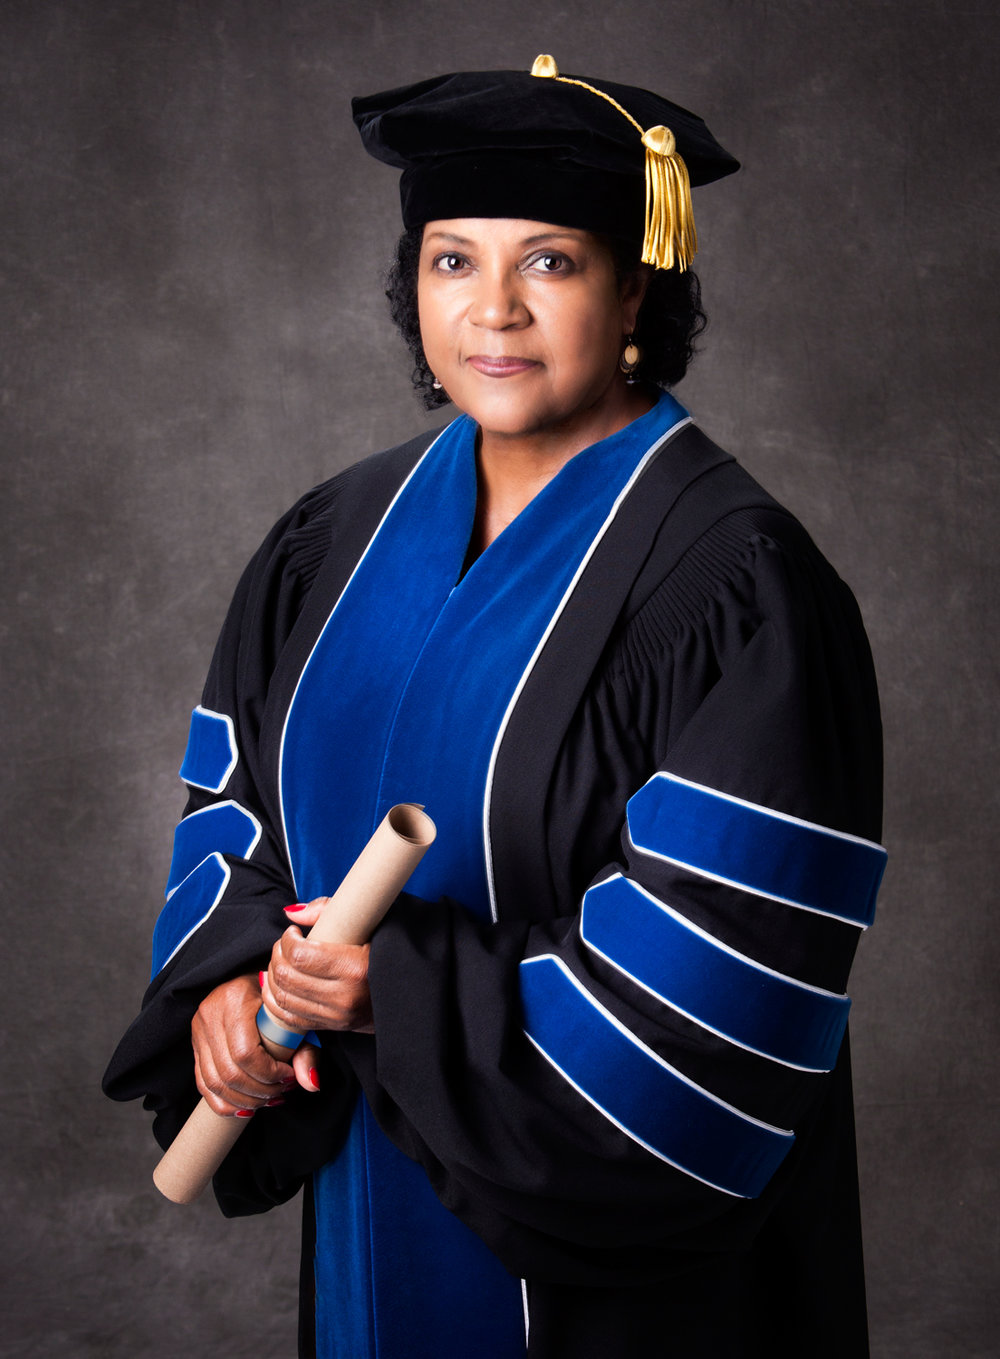 Dr. Carolyn Smith Goings of Dyersburg, Tennessee has been awarded a PhD in  Leadership and Change from Antioch University. — The CrimeSEEN Examiner News